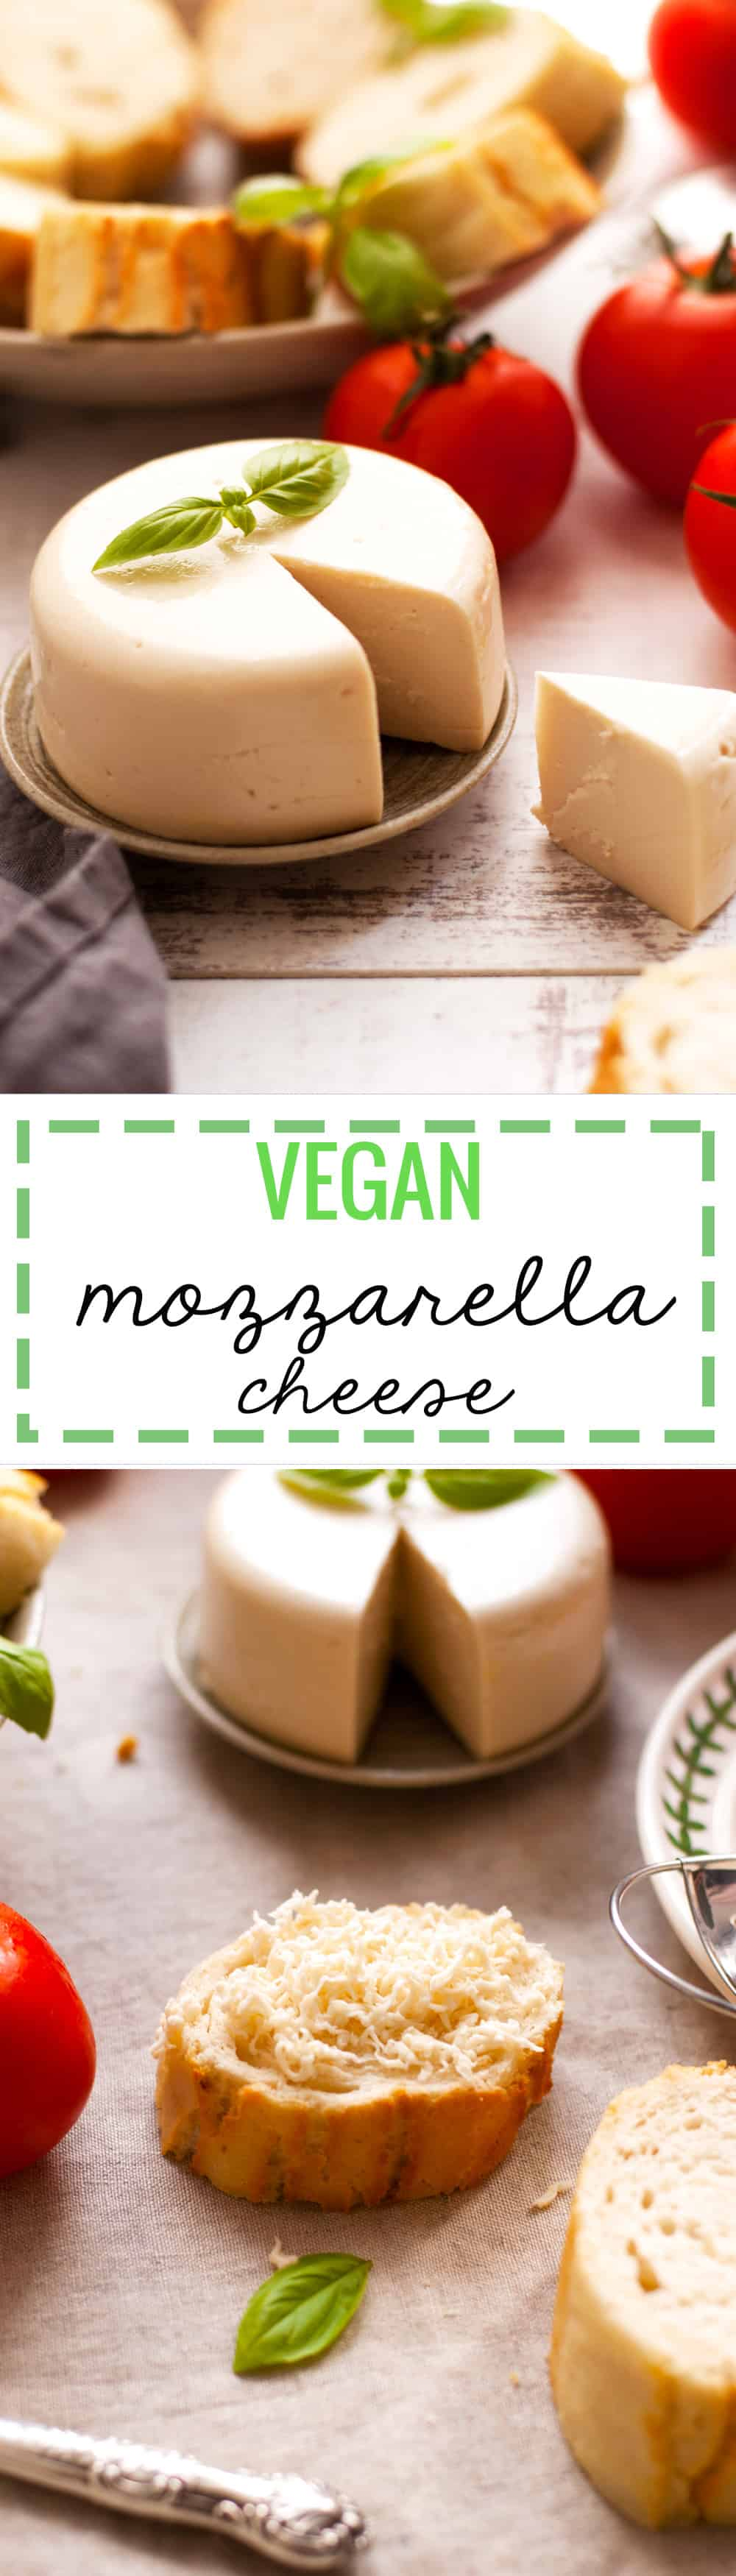 Vegan-Mozzarella-Cheese-Pinterest-Image